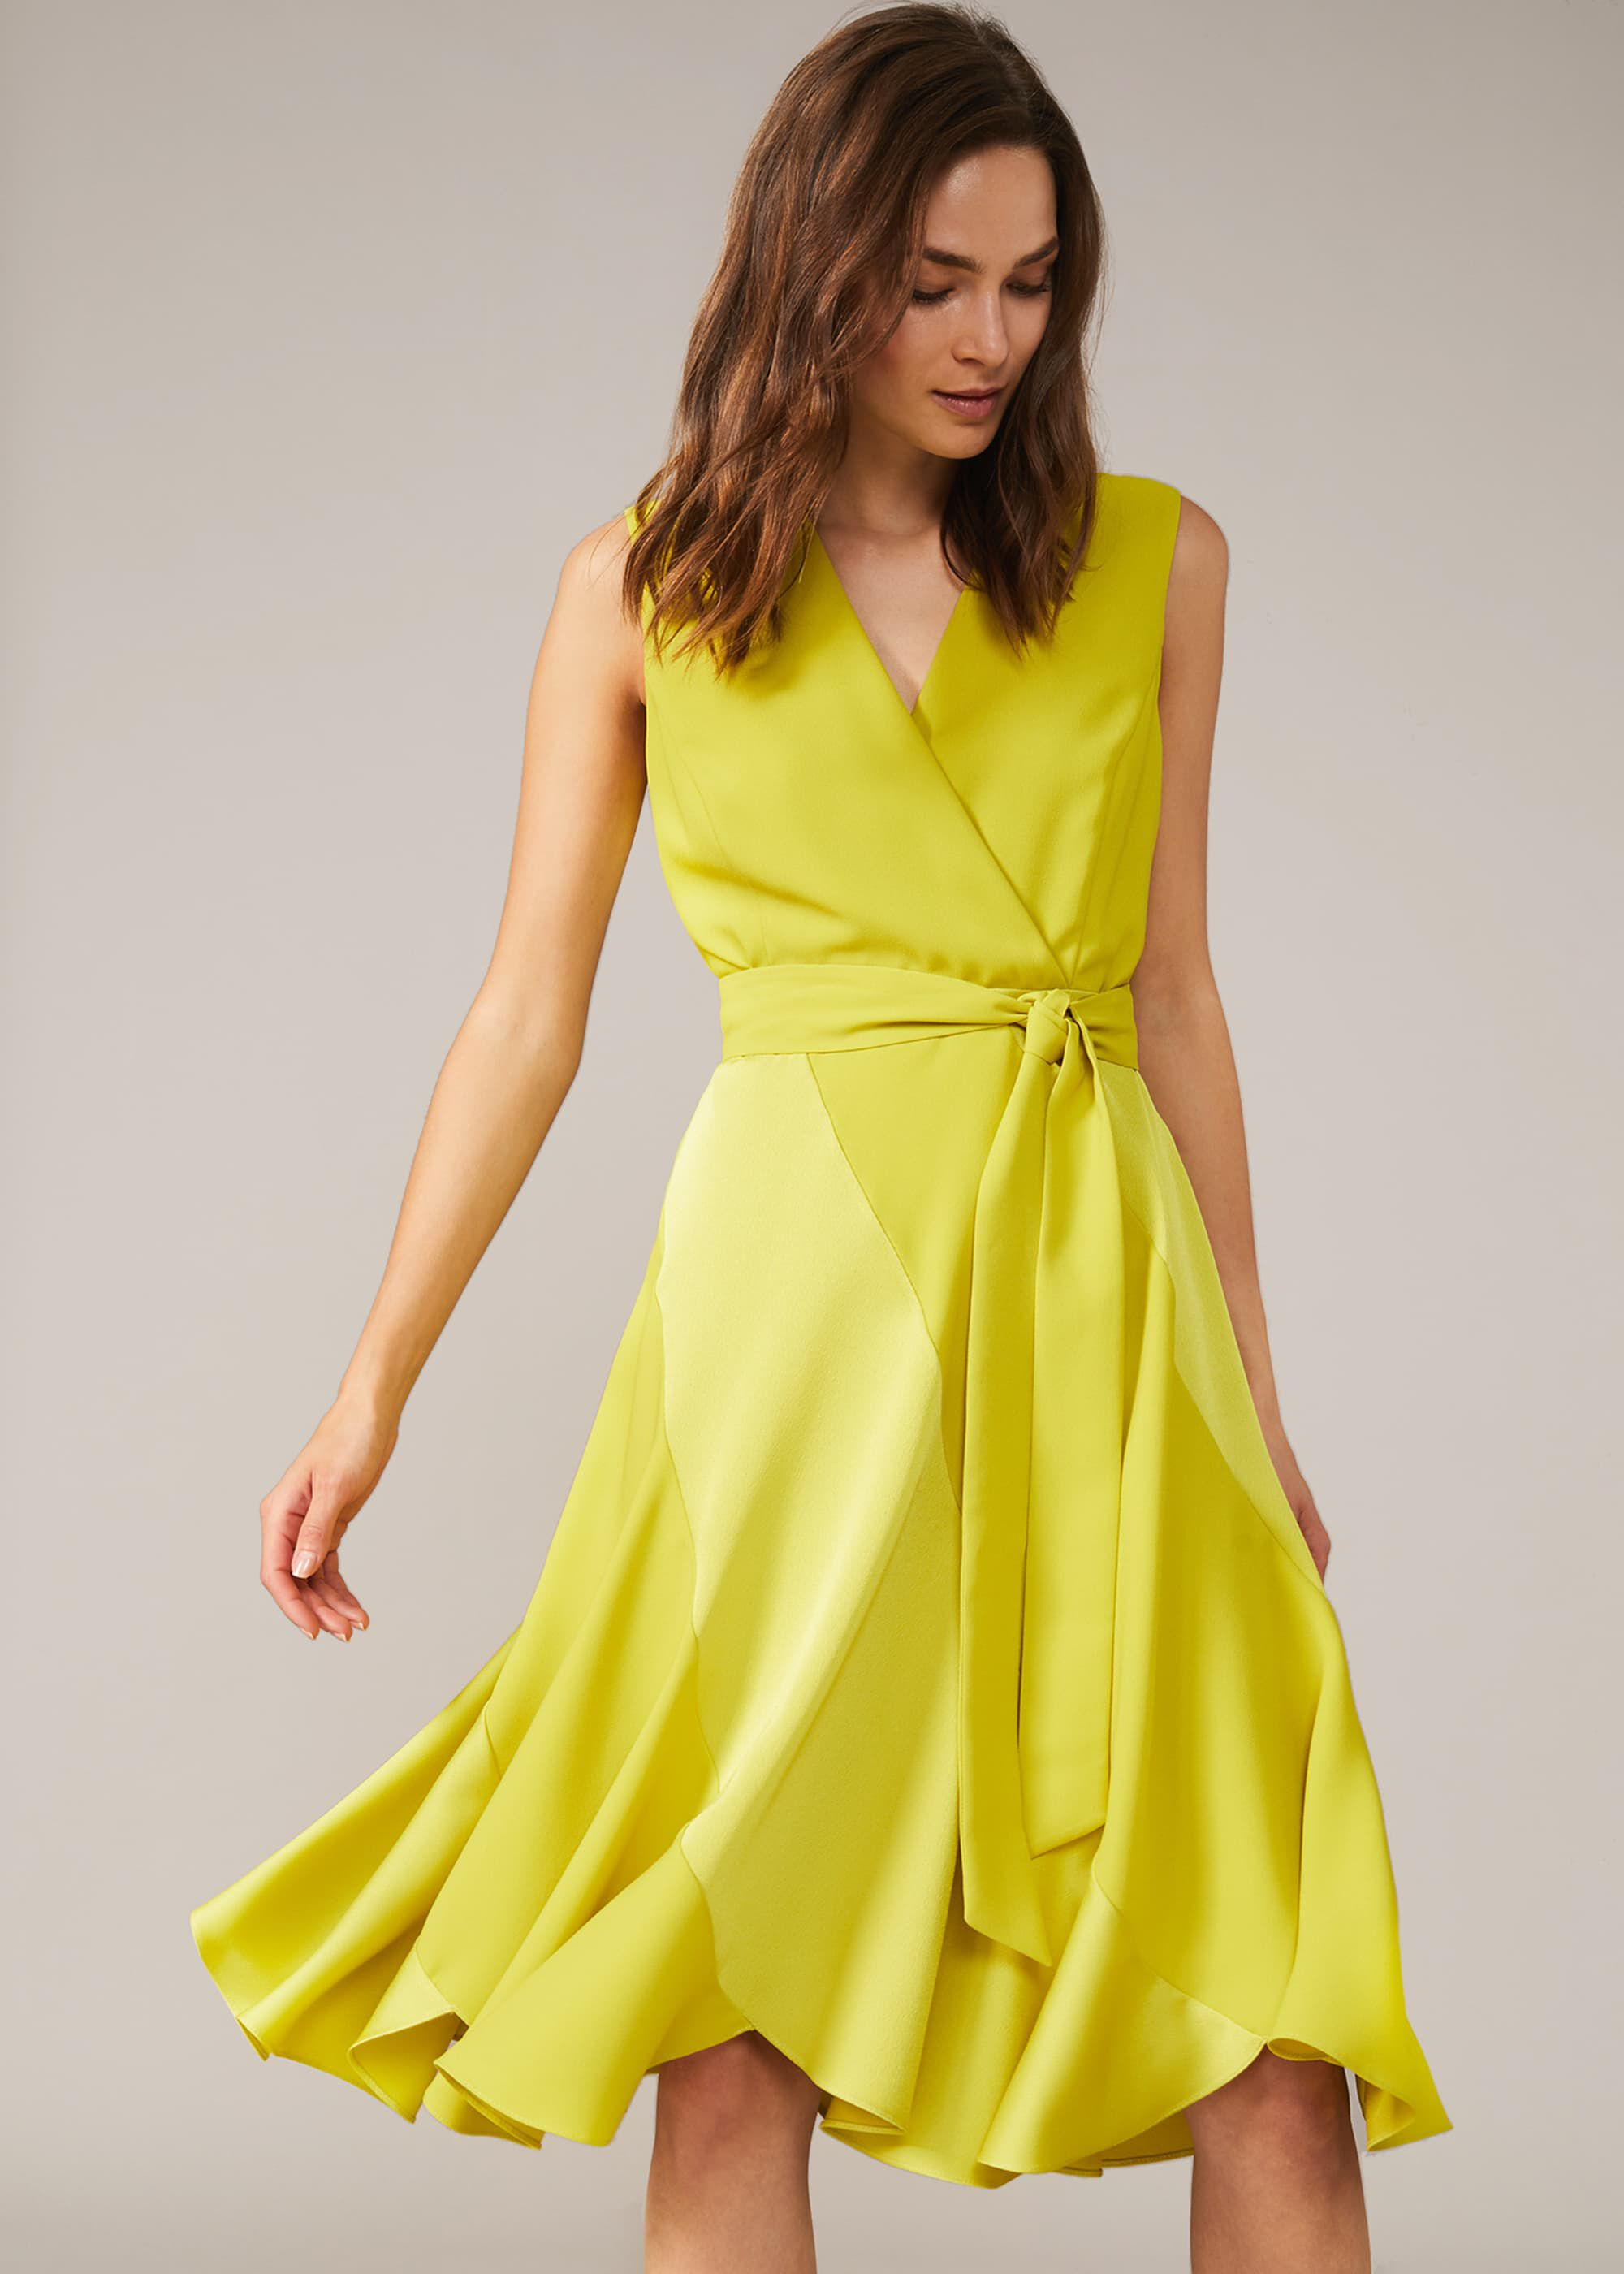 Phase Eight Philis Panelled Dress, Yellow, Occasion Dress